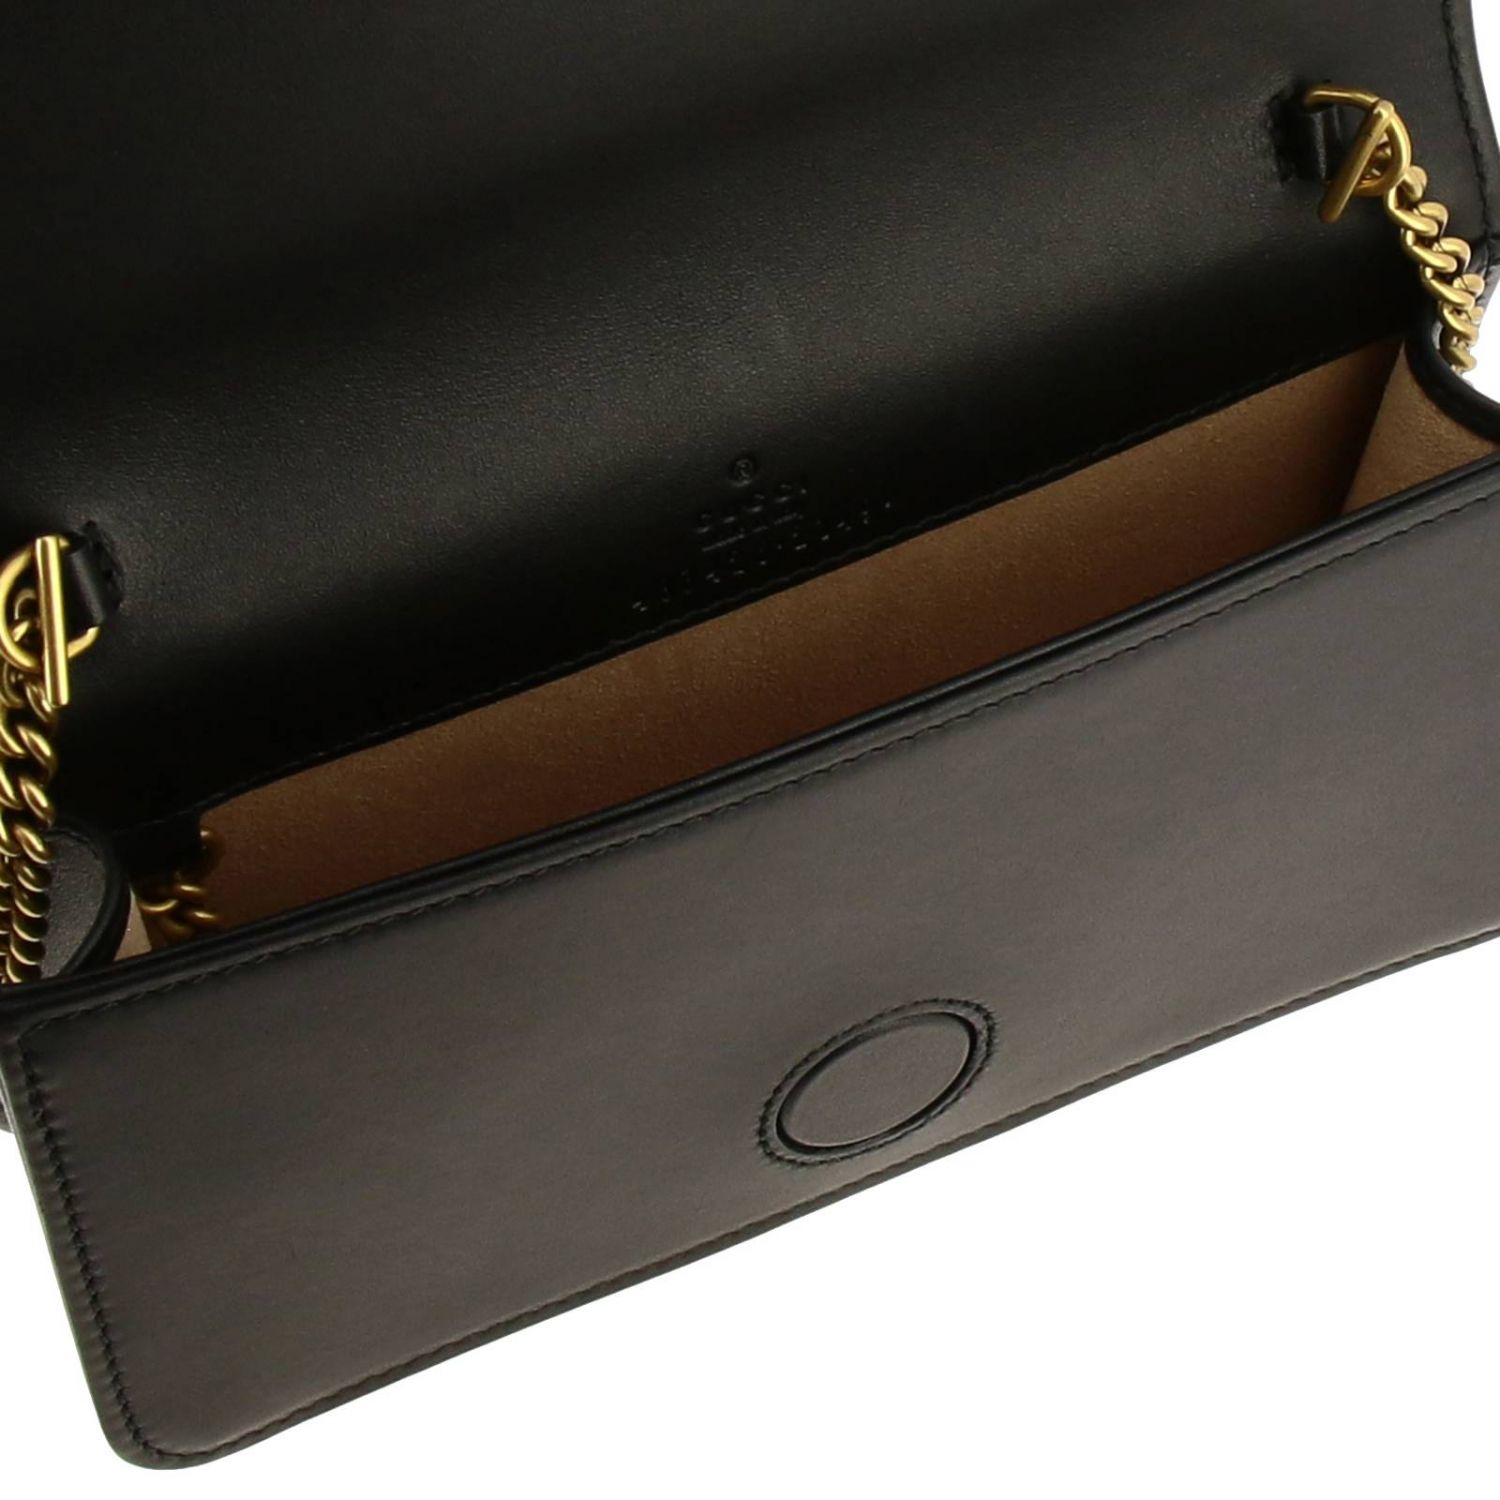 Mini bag Gucci: GG Marmont Gucci genuine quilted leather handbag with chevron pattern black 5